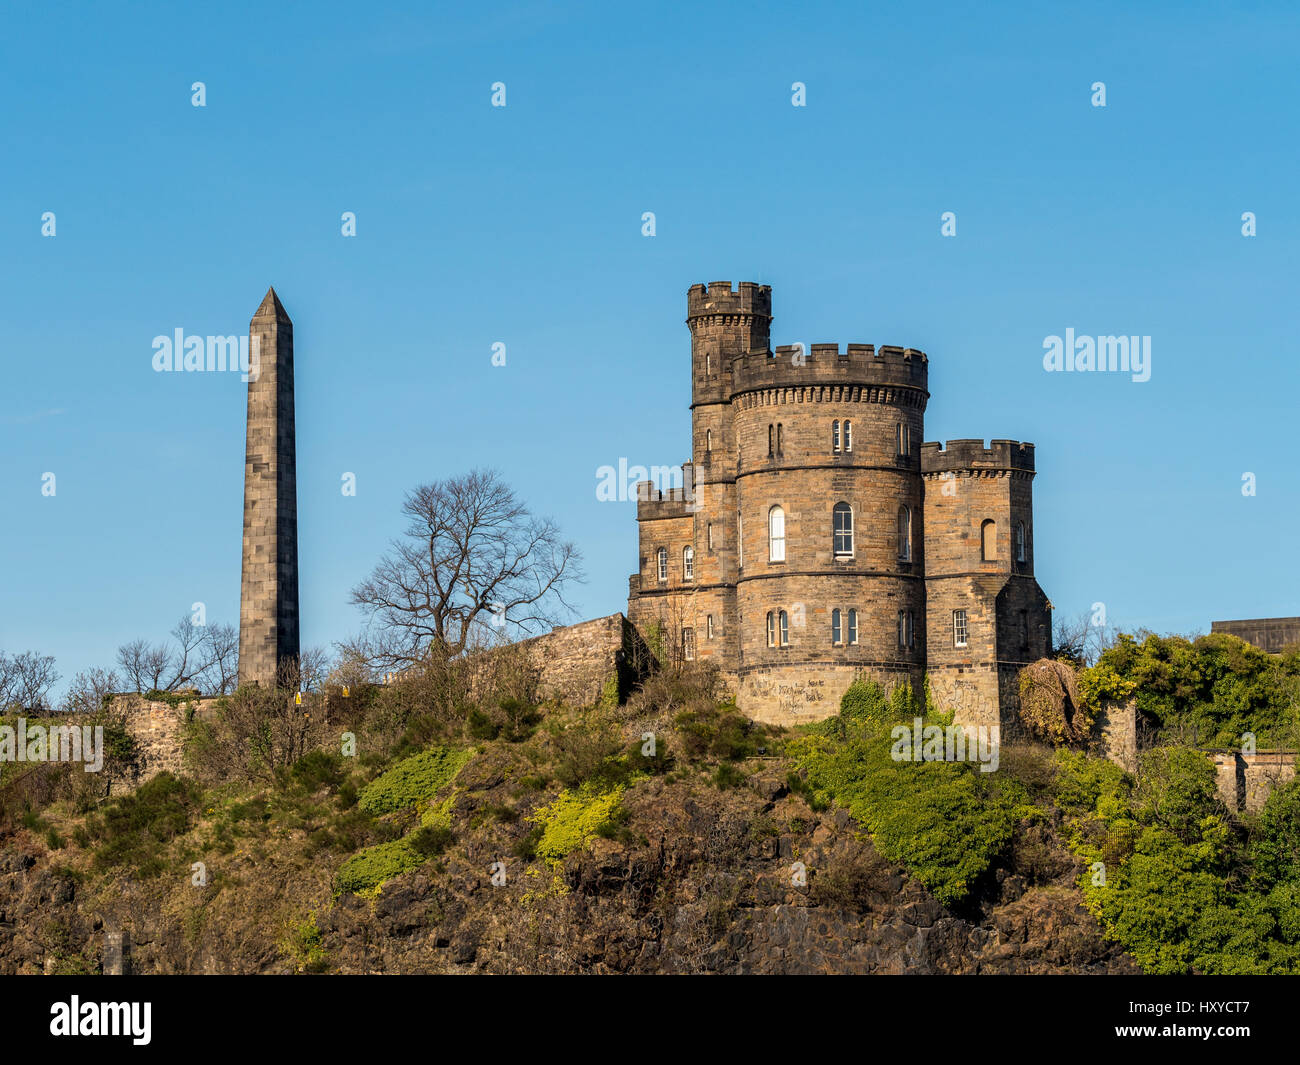 Political Martyrs Monument and The Governors House, Calton Hill, Edinburgh, Scotland. Stock Photo